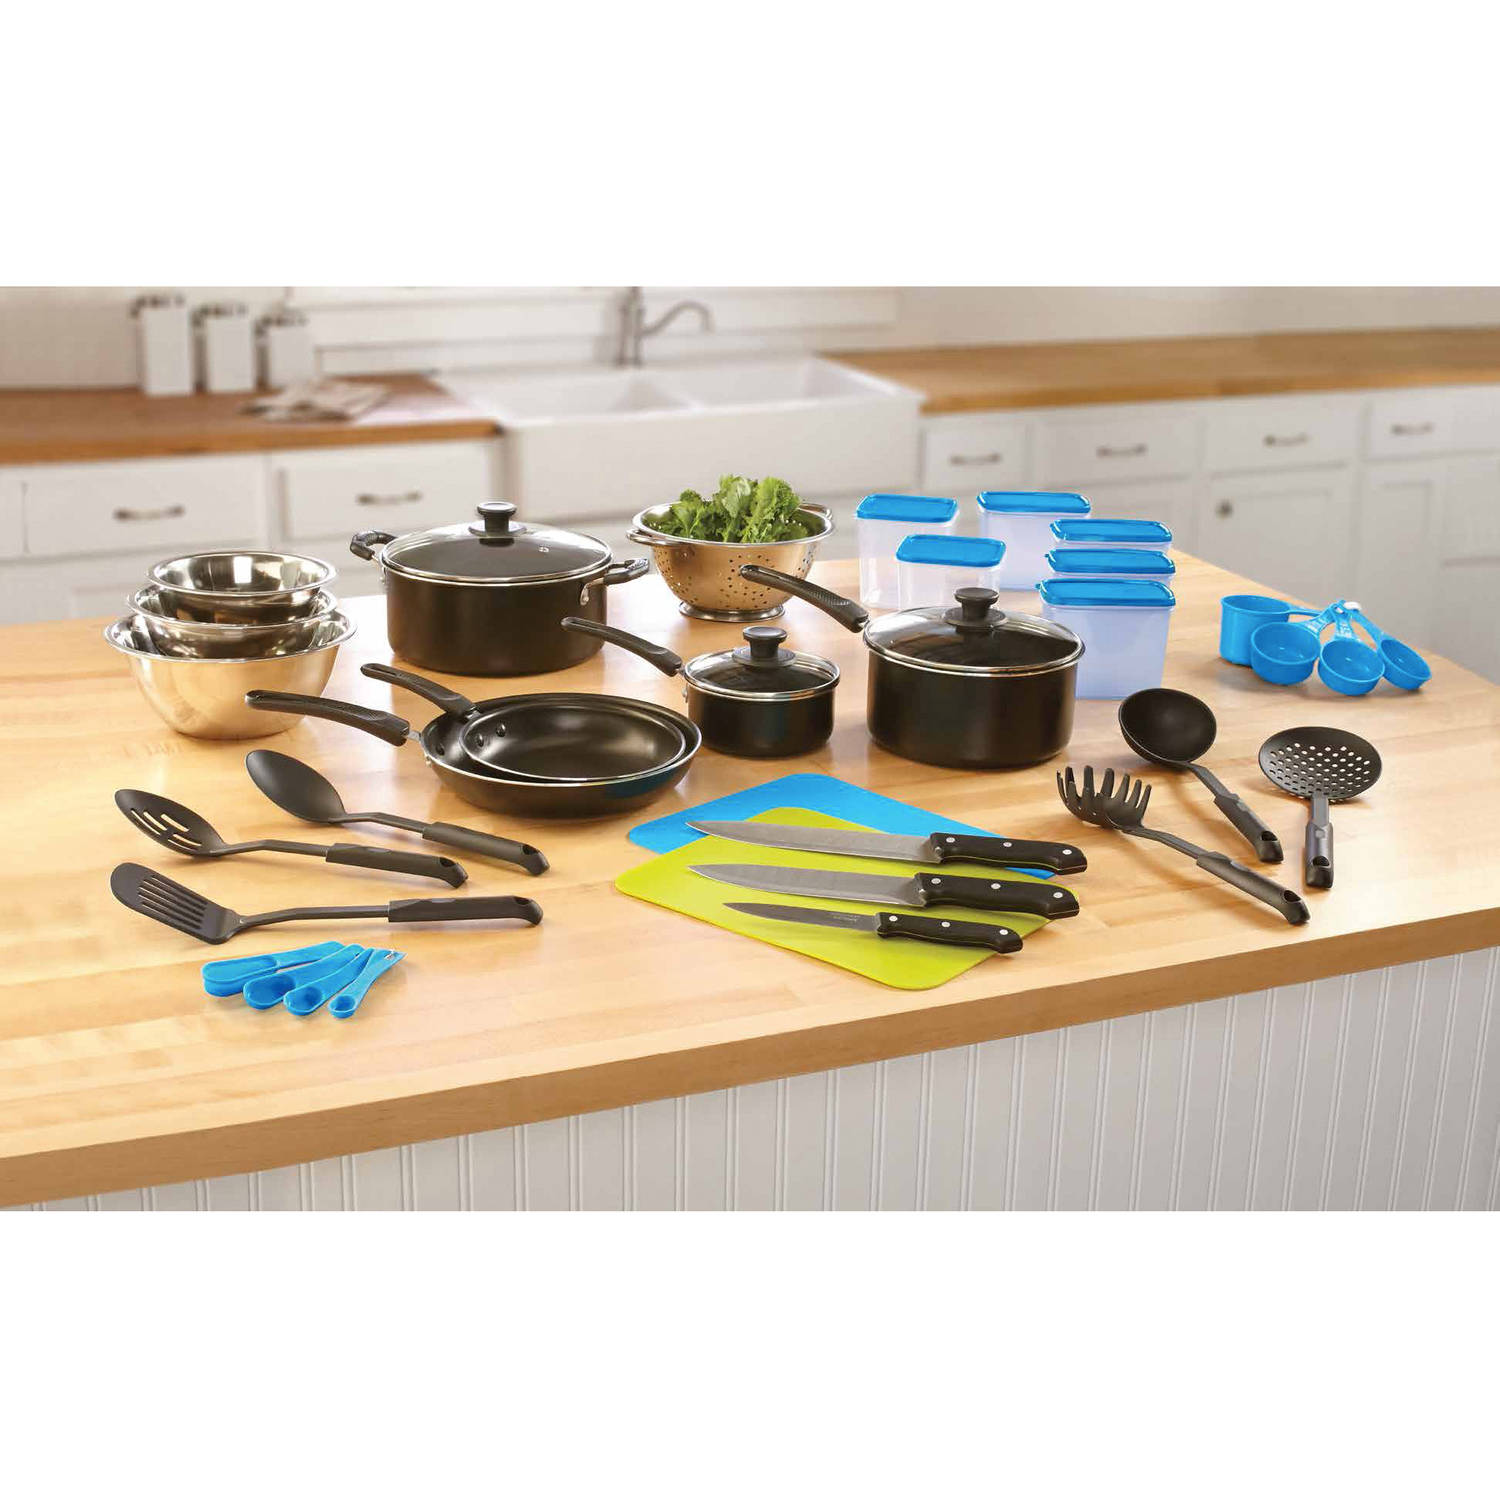 Mainstays 40-Piece Aluminum Essential Kitchen Set